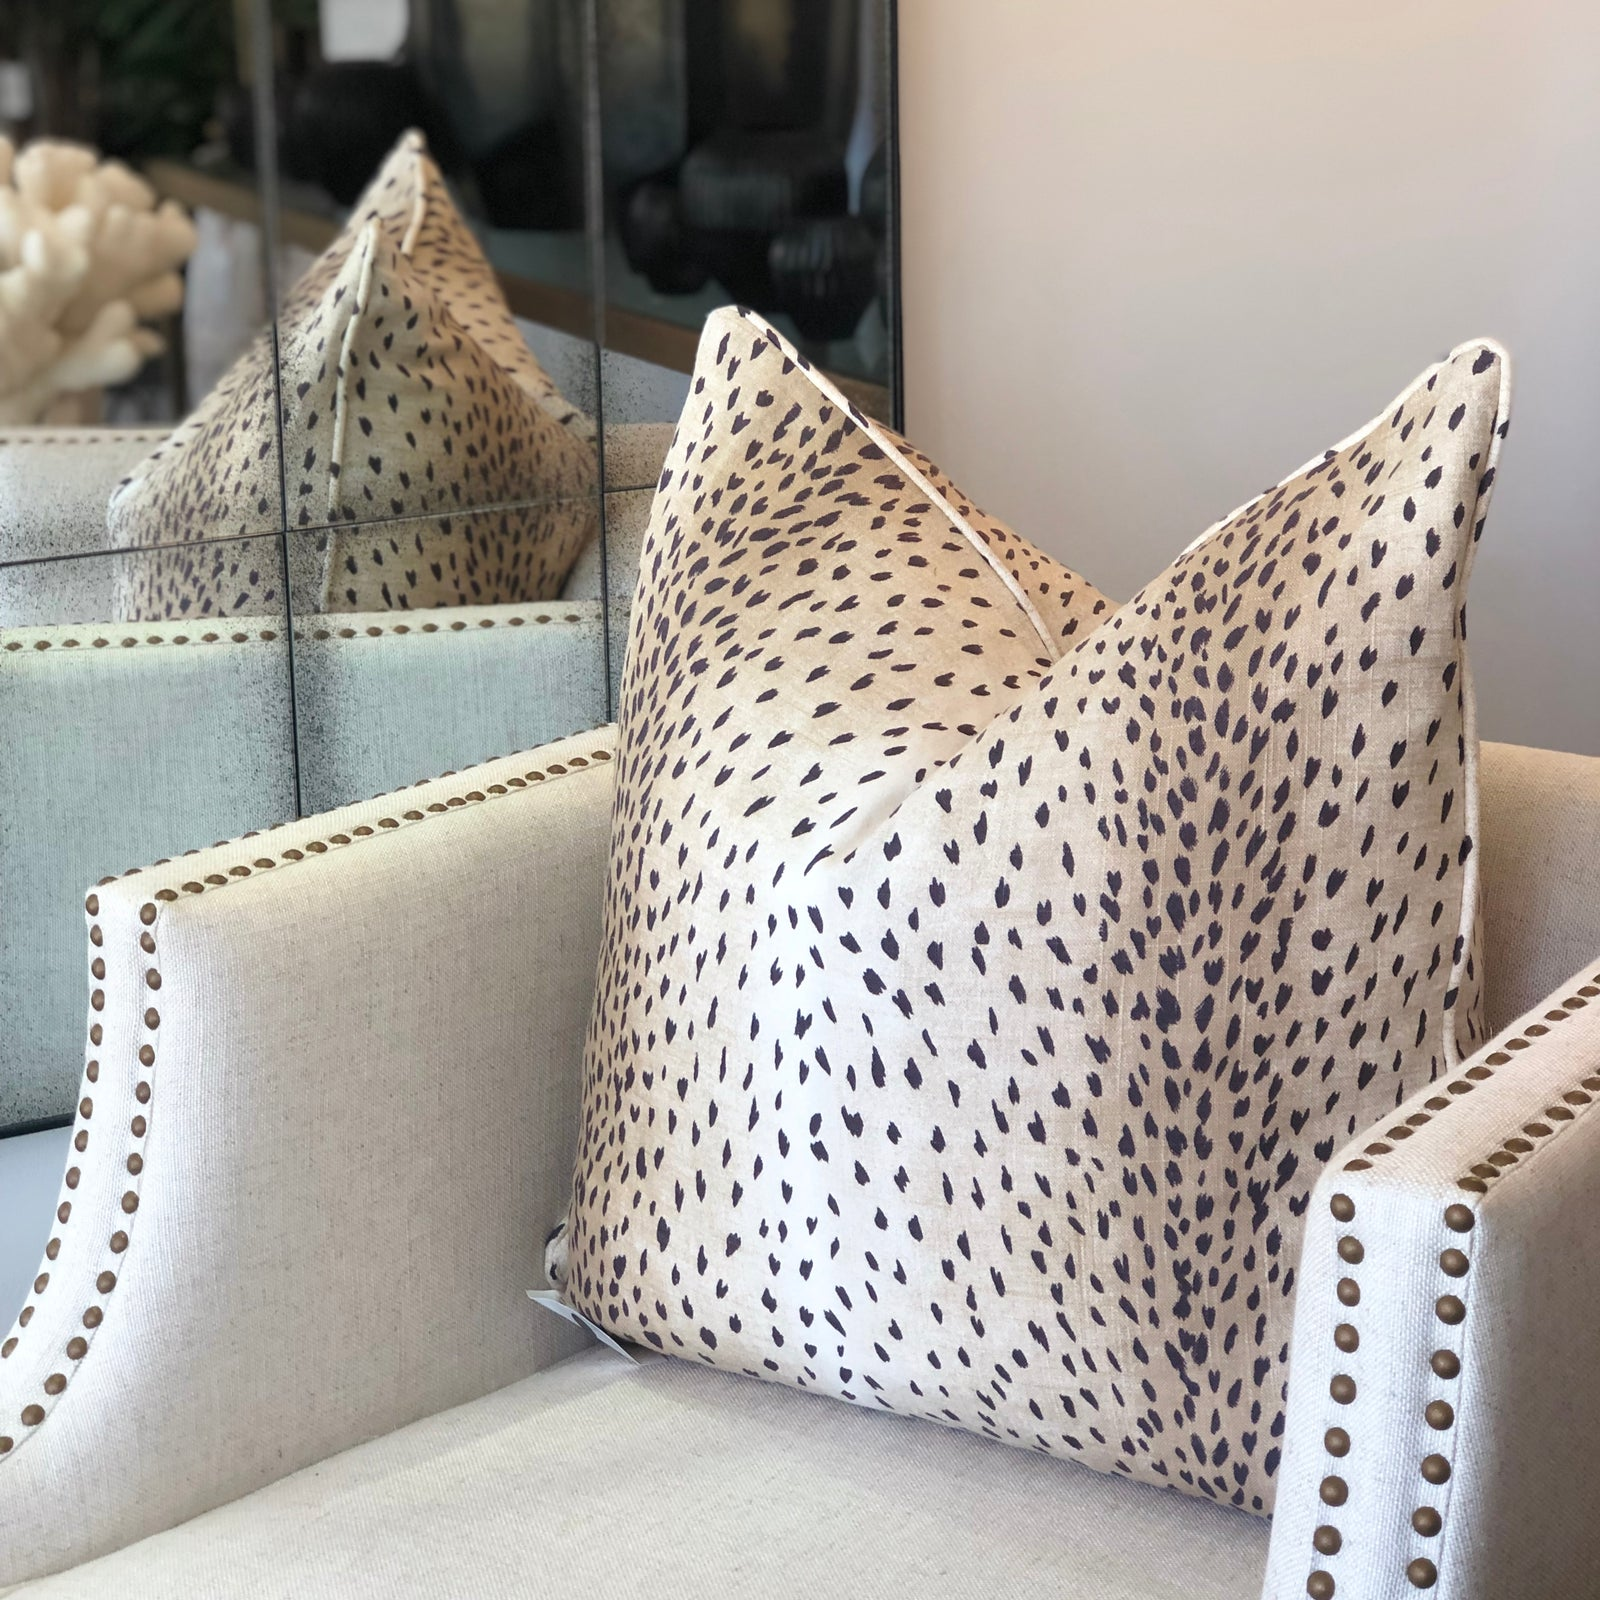 Cheetah Classic Black 60 x 60 Cushion